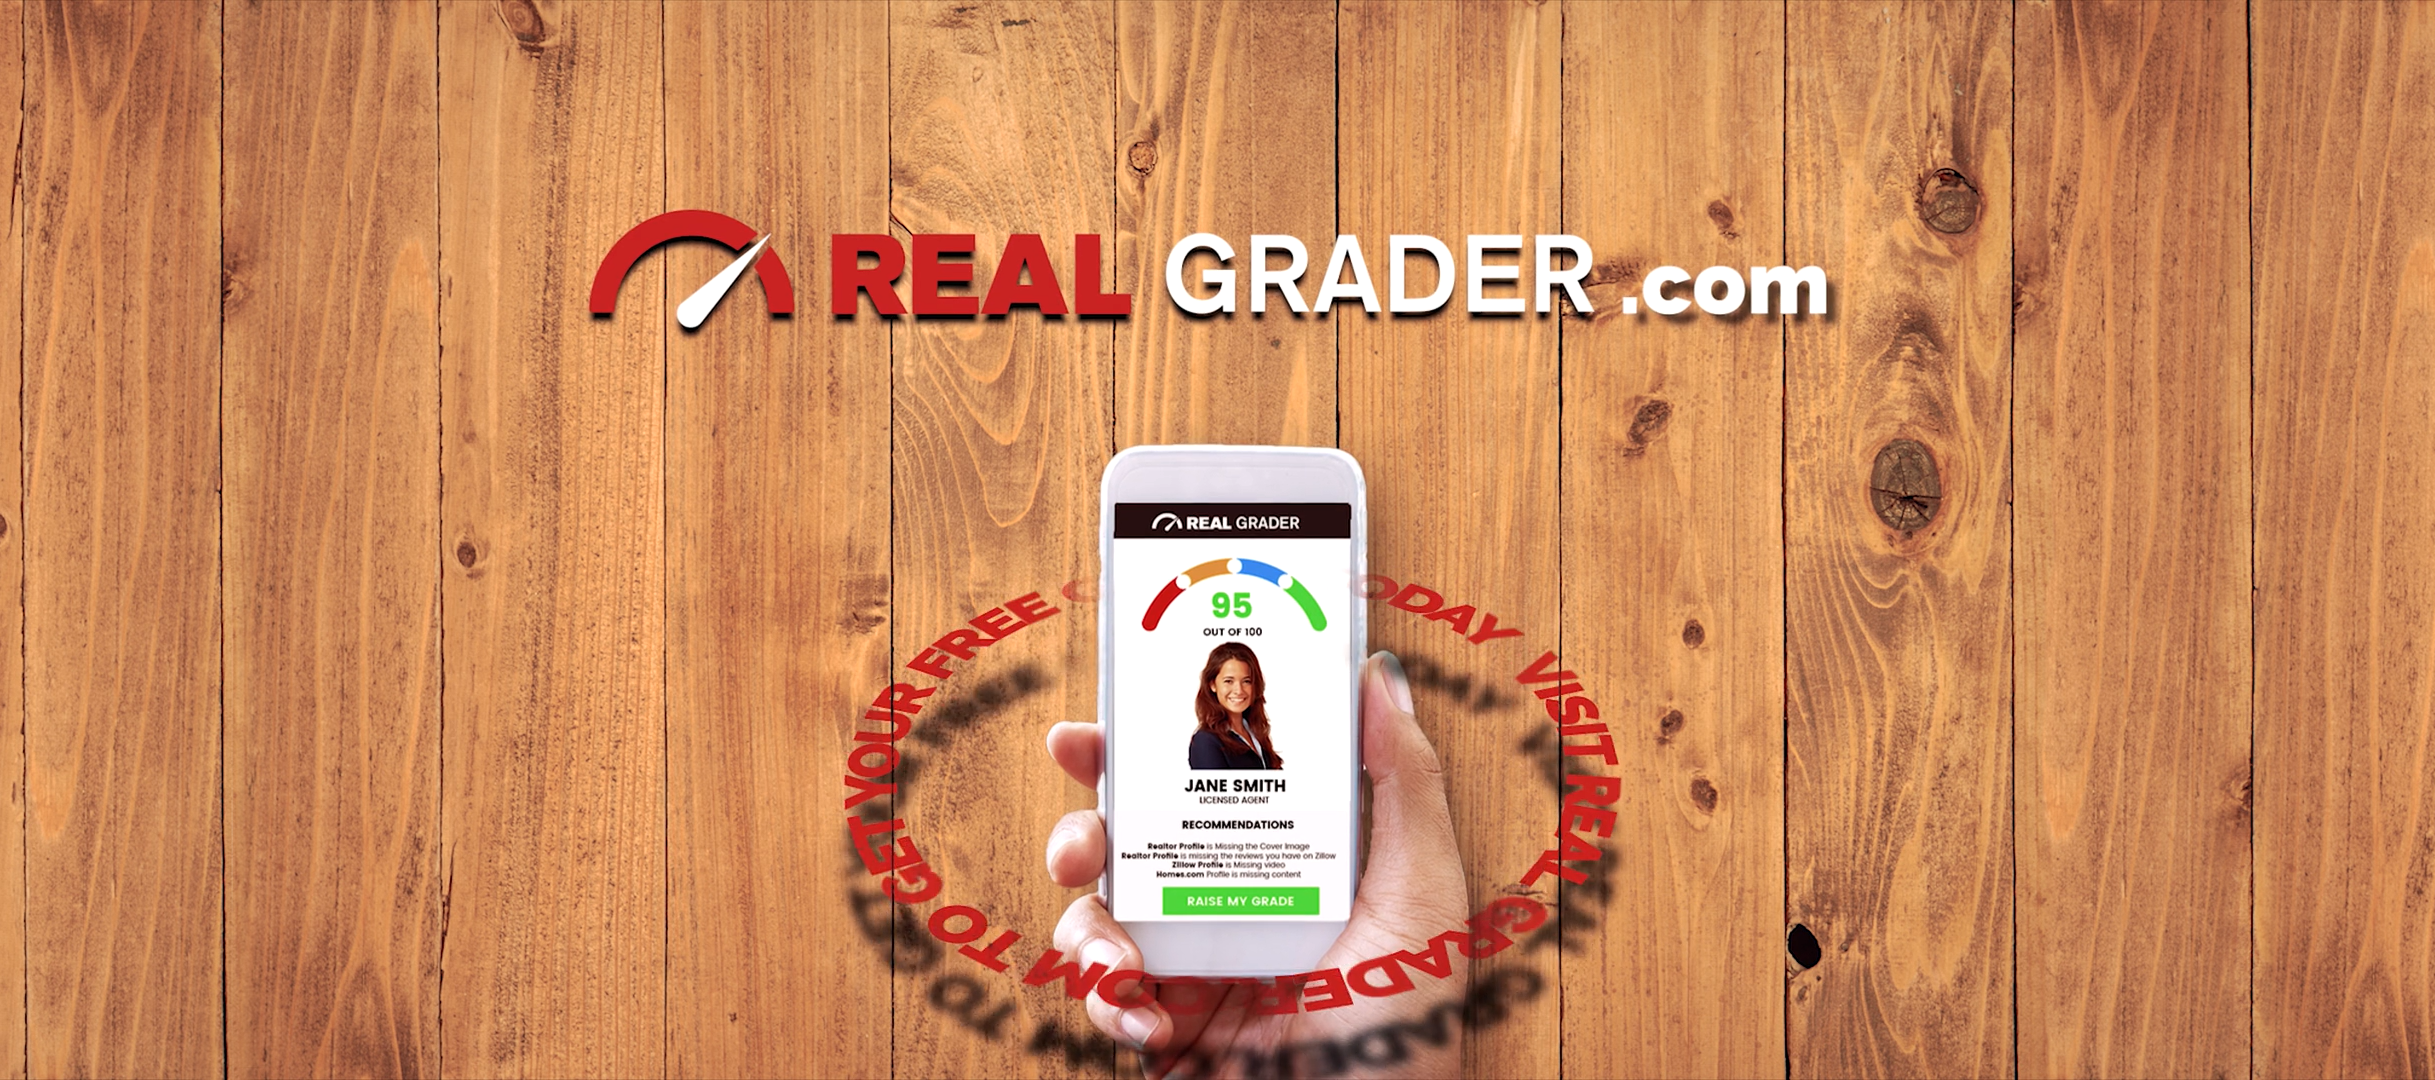 RealGrader Online Reputation Management